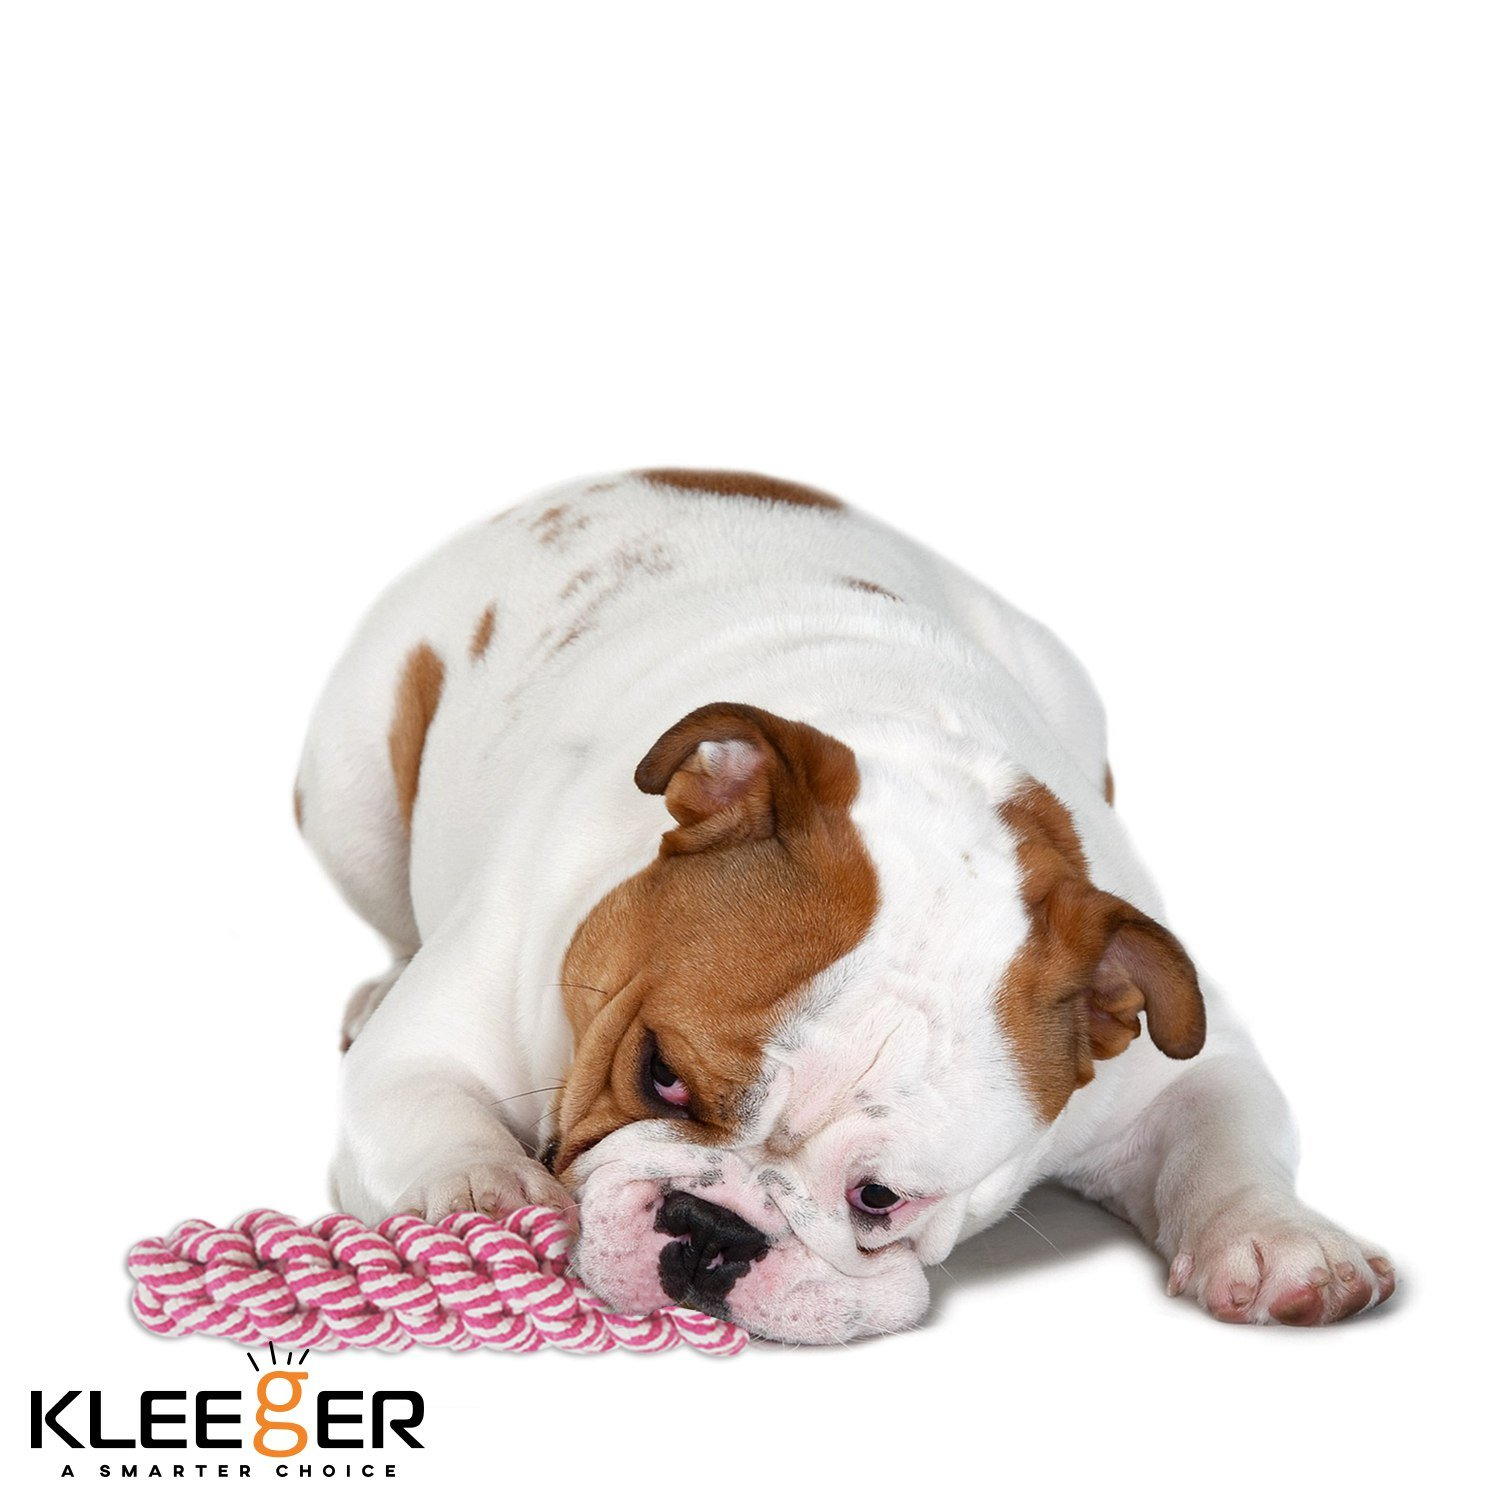 Pet Supplies Kleeger Dog Toy Set Durable 10 Pack Puppy Toy